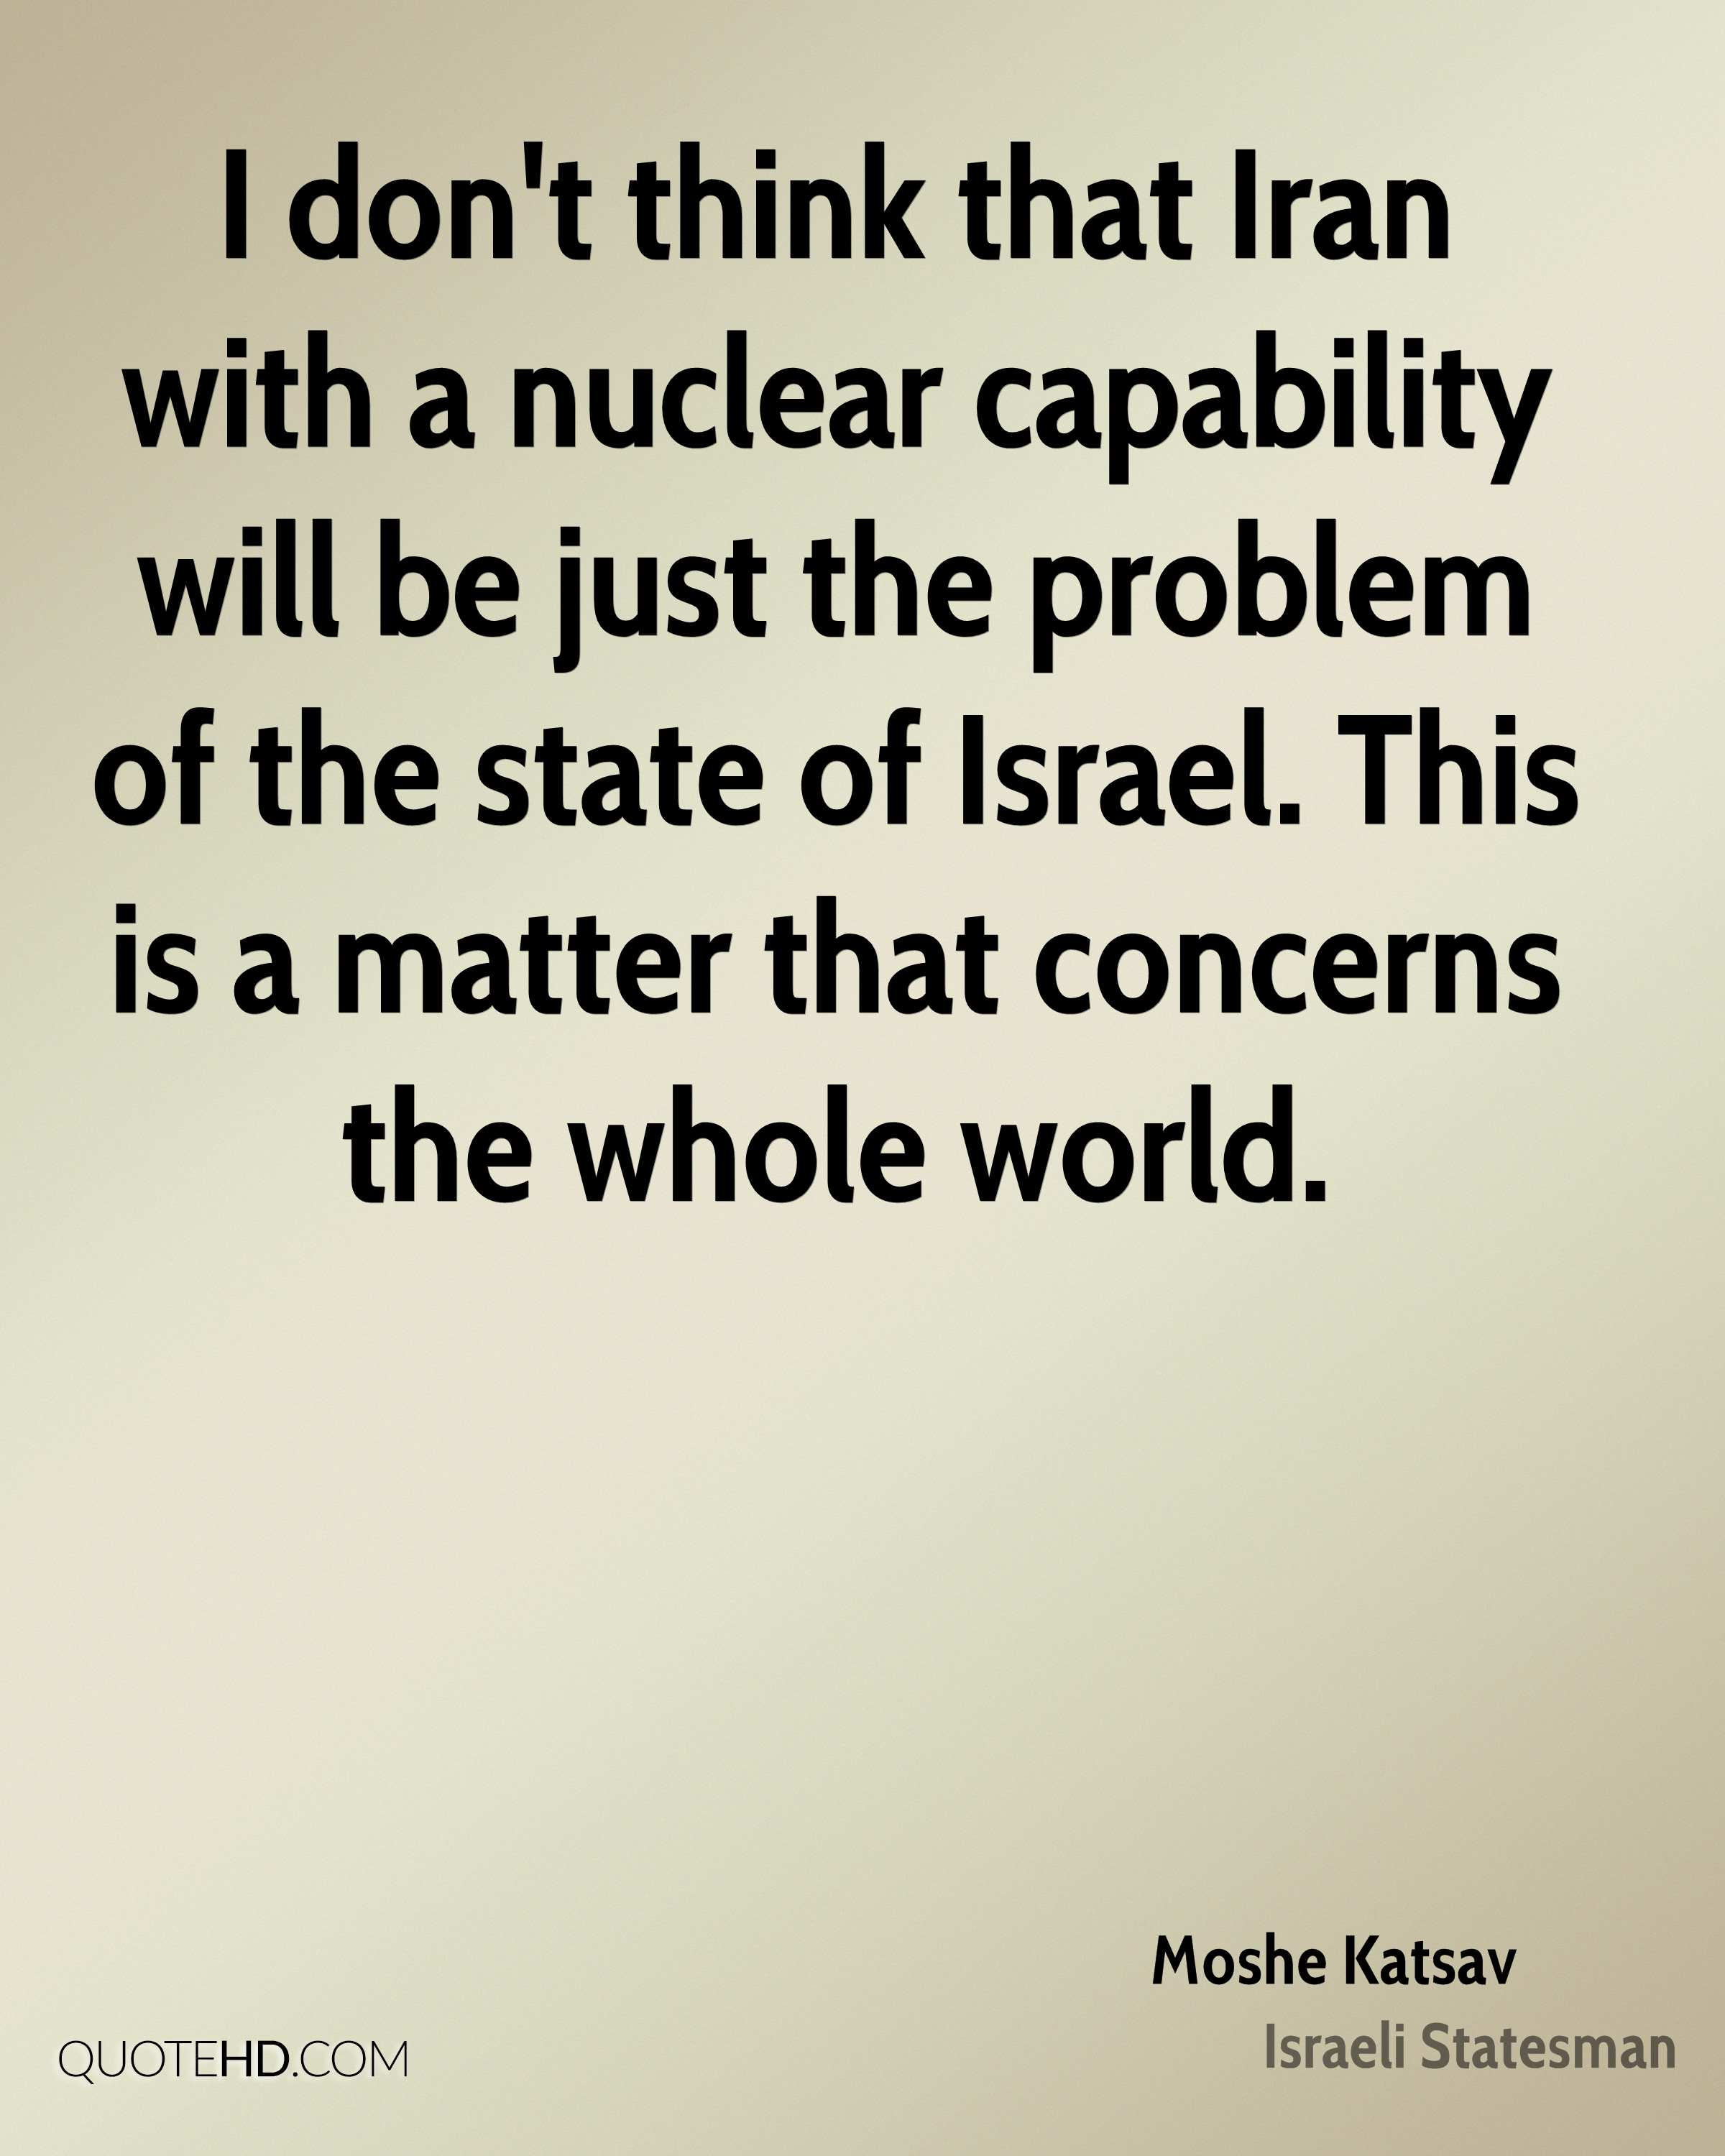 I don't think that Iran with a nuclear capability will be just the problem of the state of Israel. This is a matter that concerns the whole world.